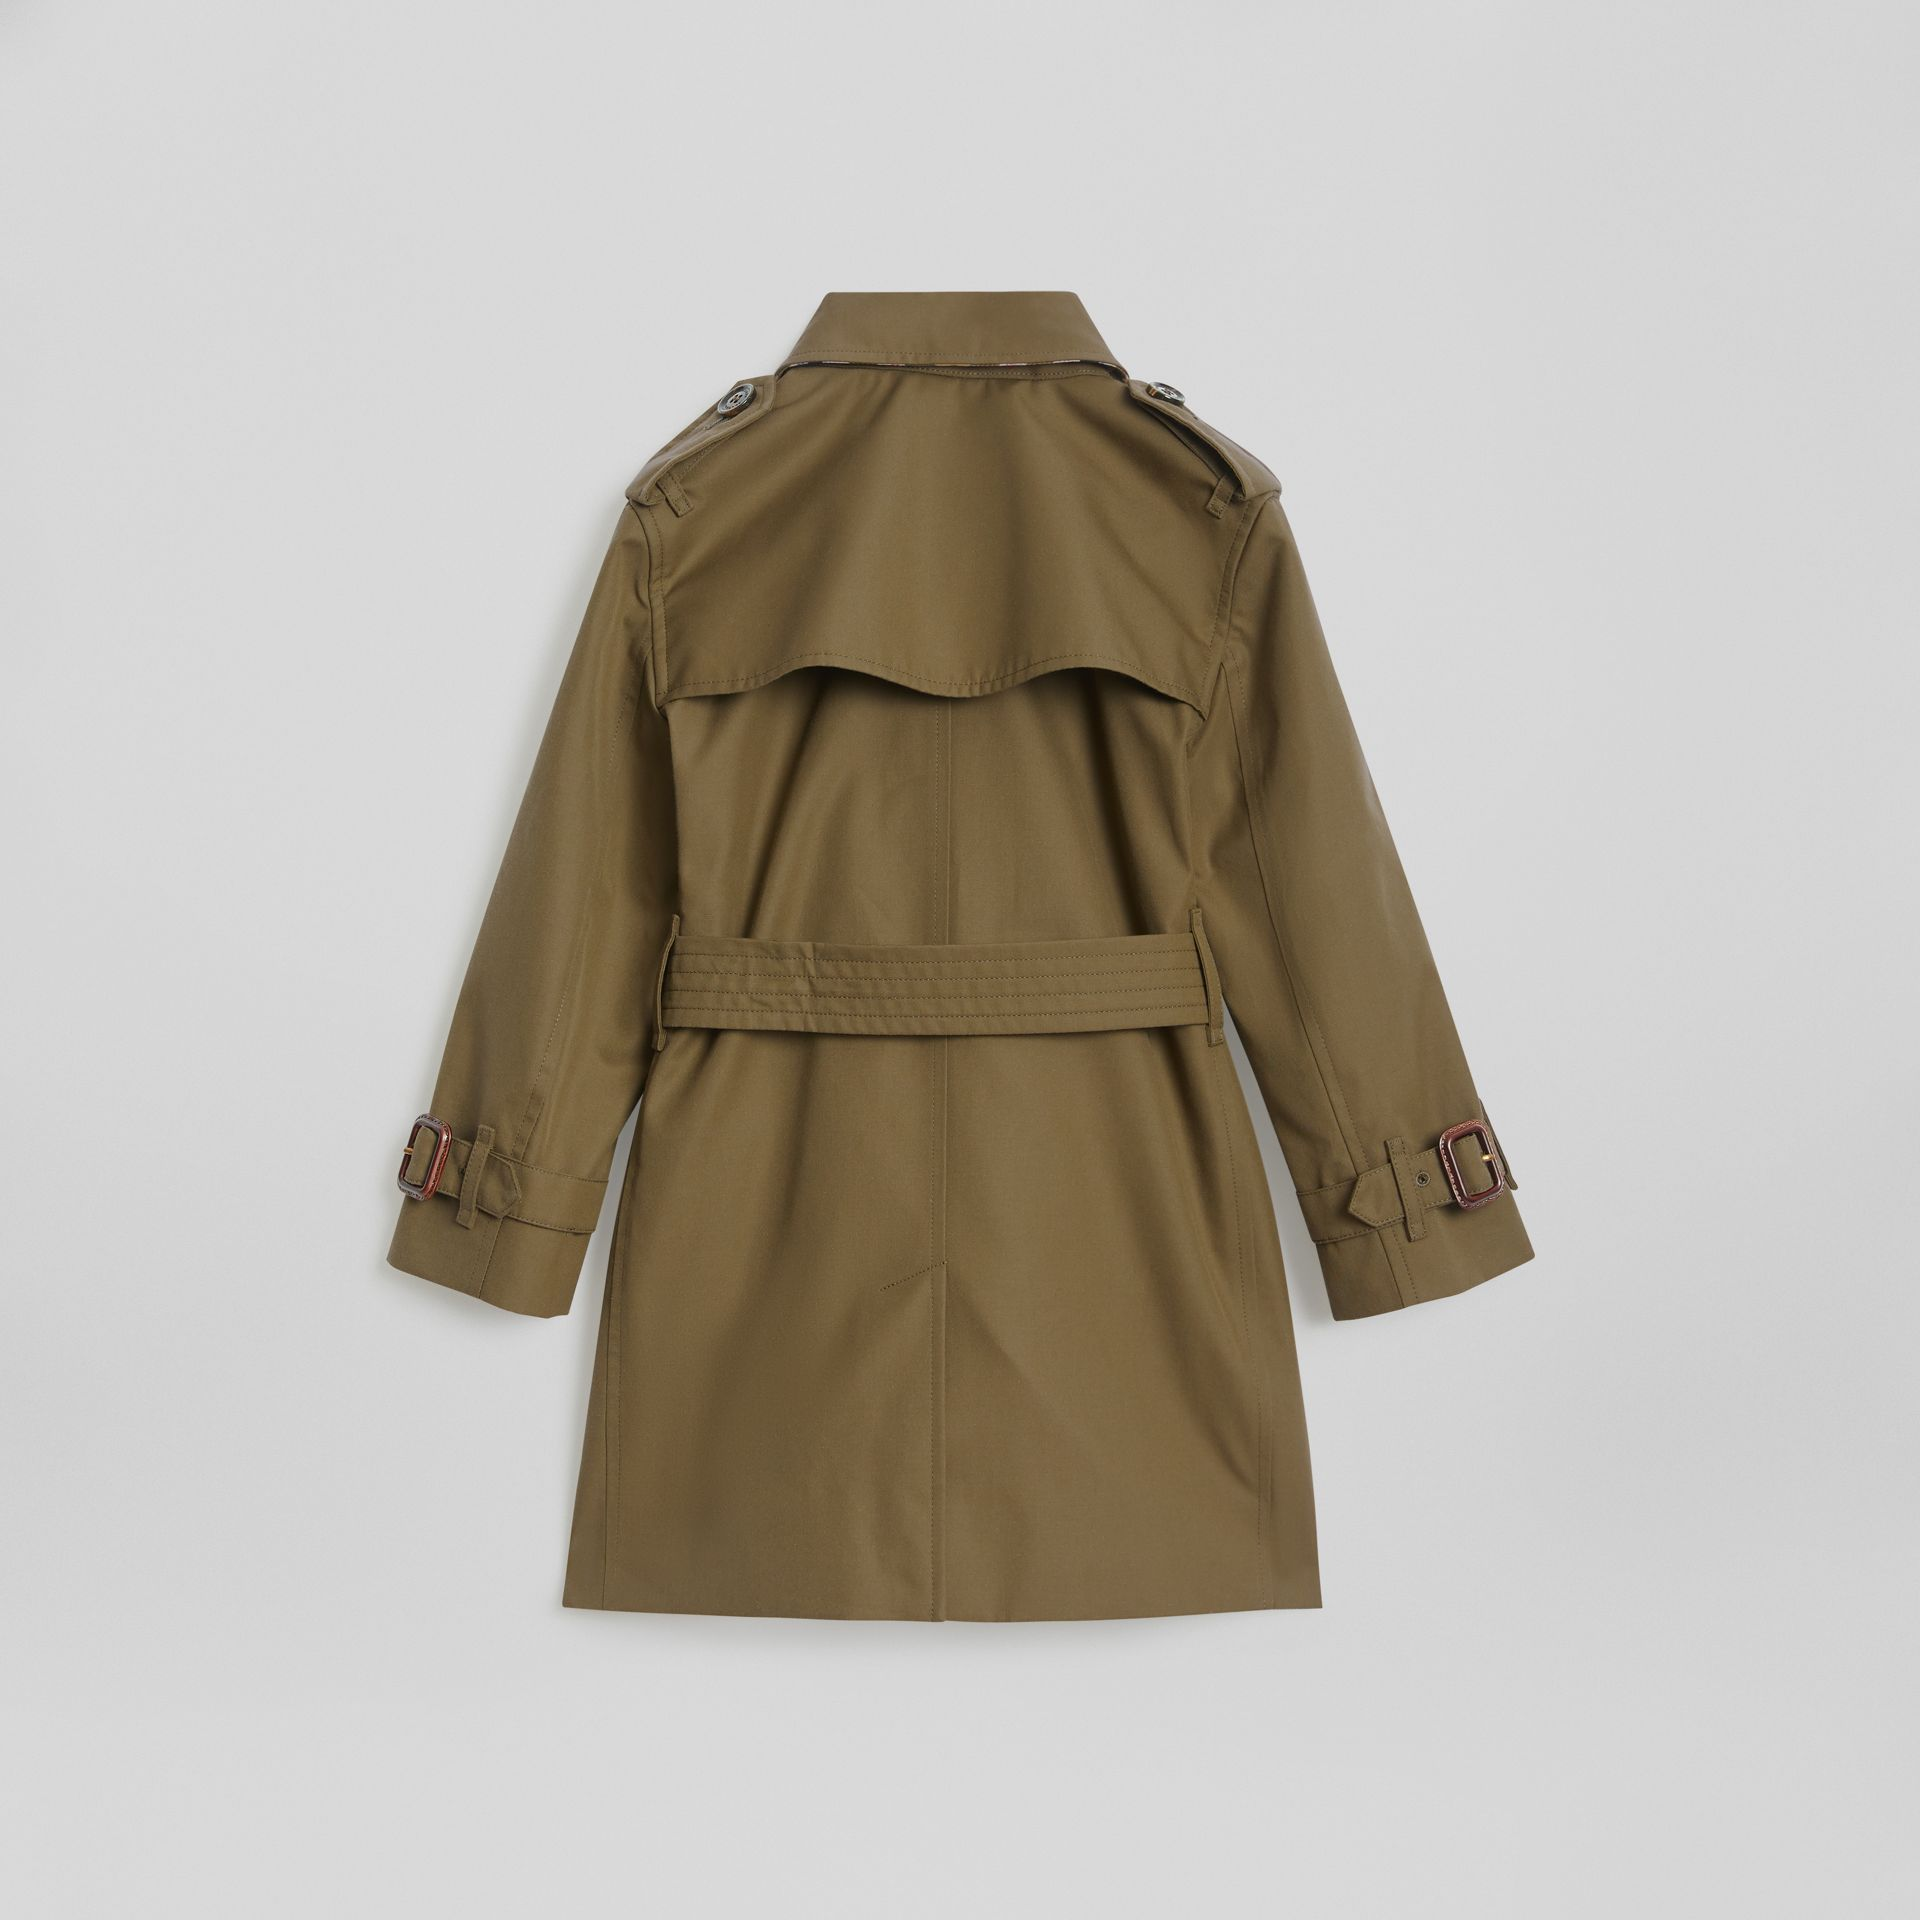 Cotton Gabardine Trench Coat in Military Olive | Burberry - gallery image 3